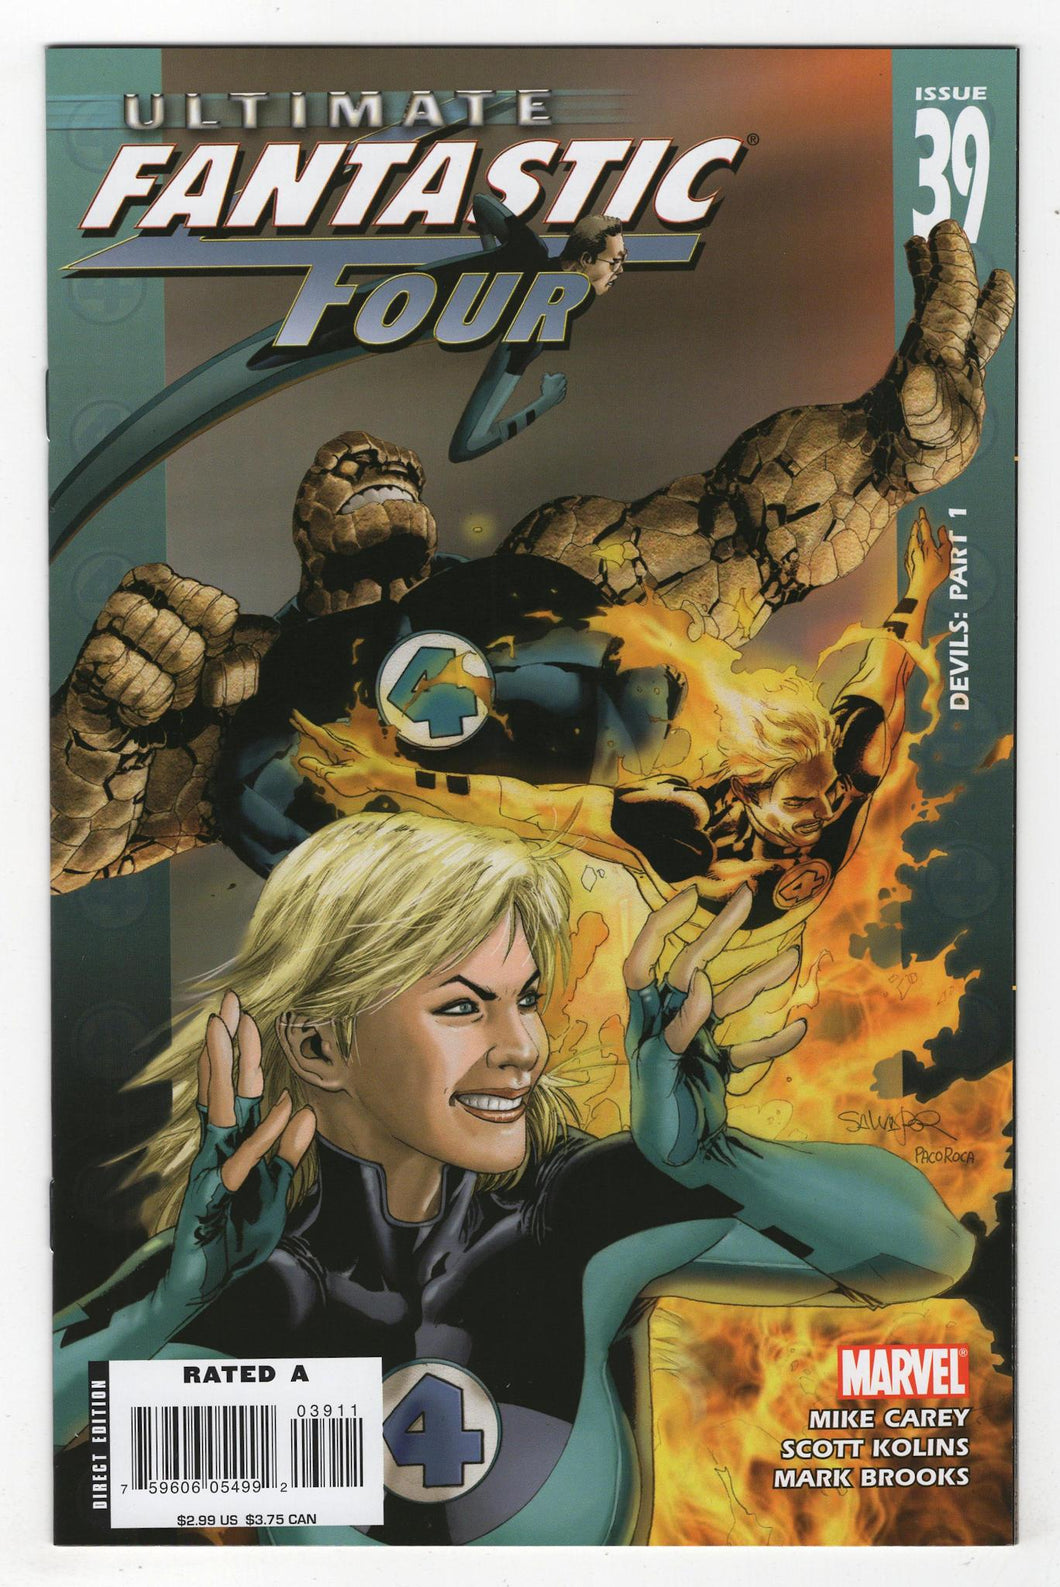 Ultimate Fantastic Four #39 Cover Front